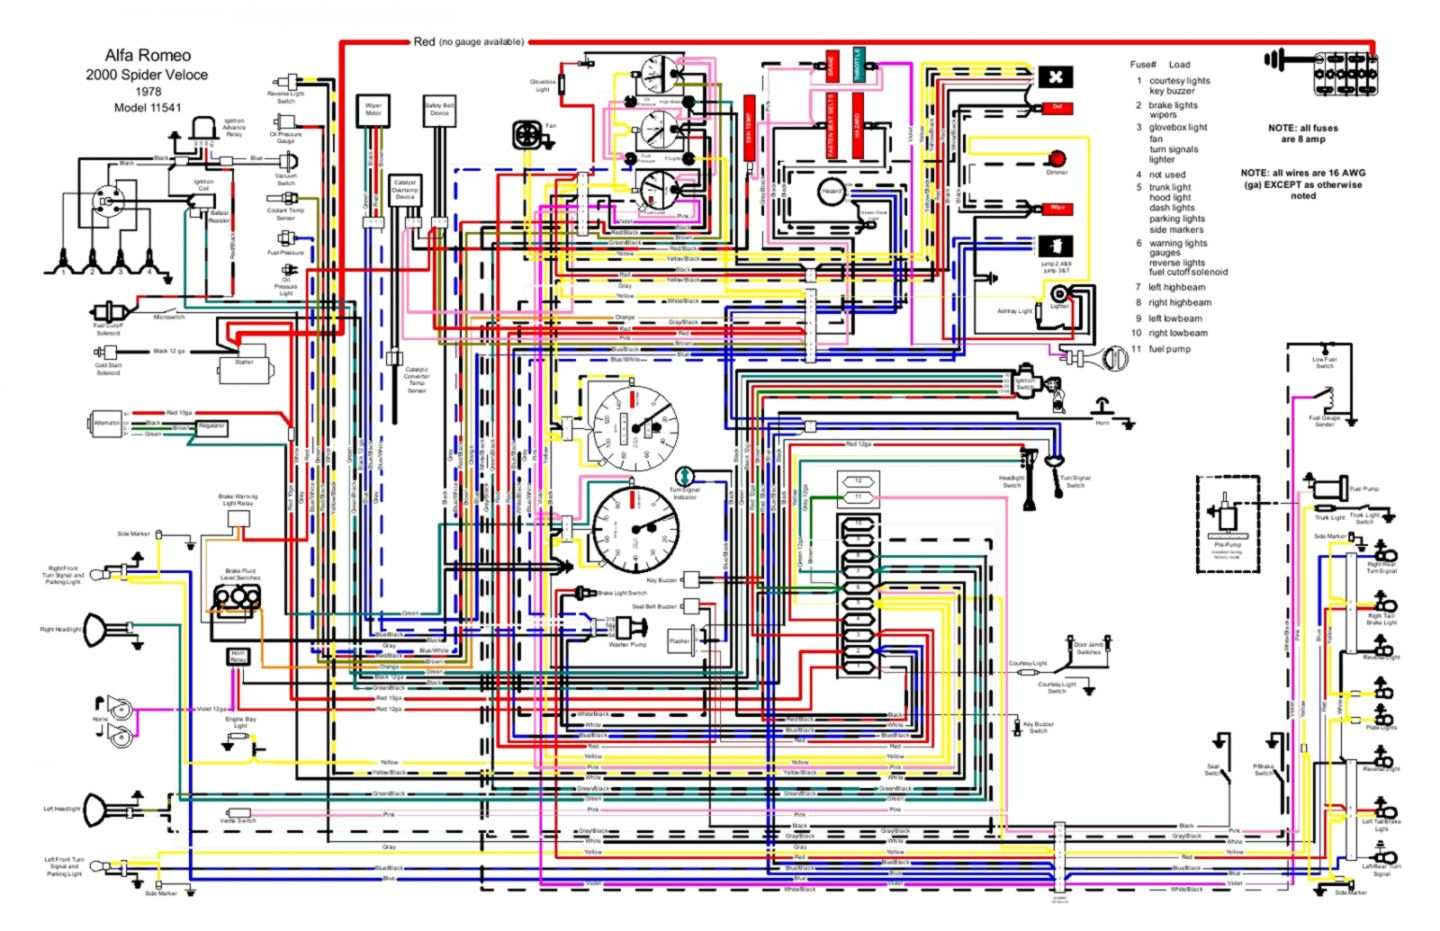 medium resolution of basic automotive wiring diagram wiring diagram paper vehicle wiring diagram symbols basic auto electrical diagram wiring